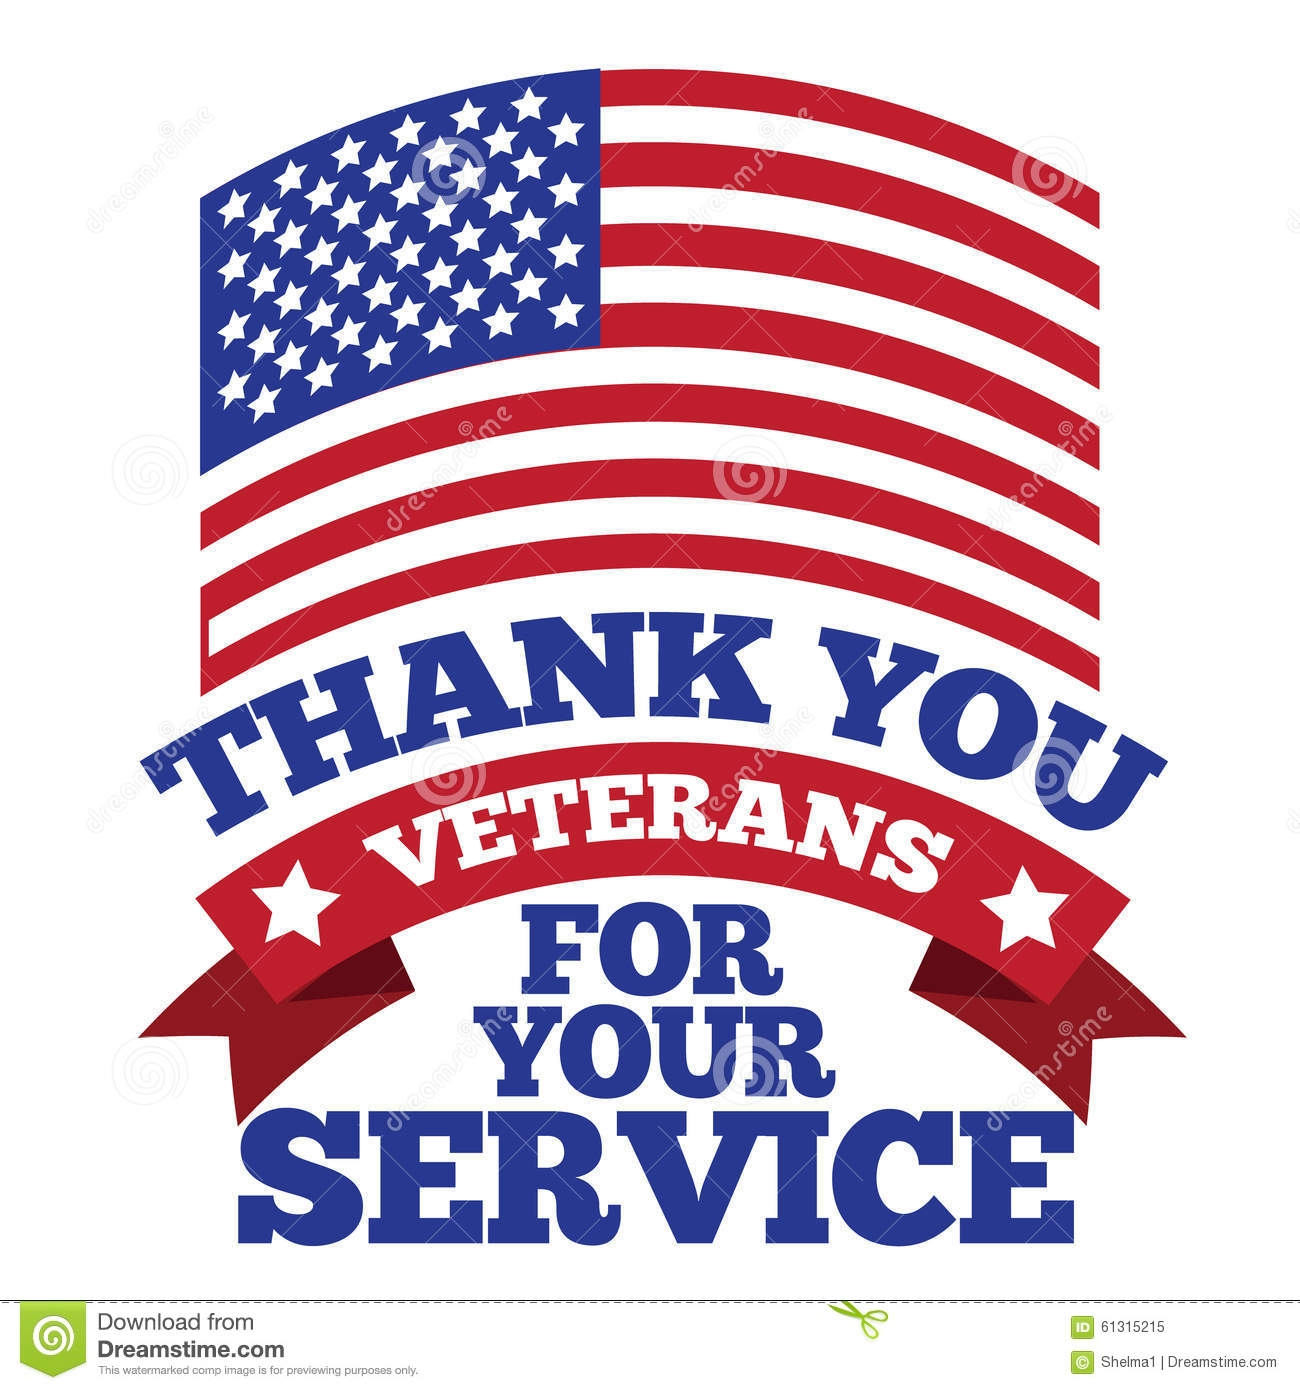 Free Clipart Images Veterans Day.